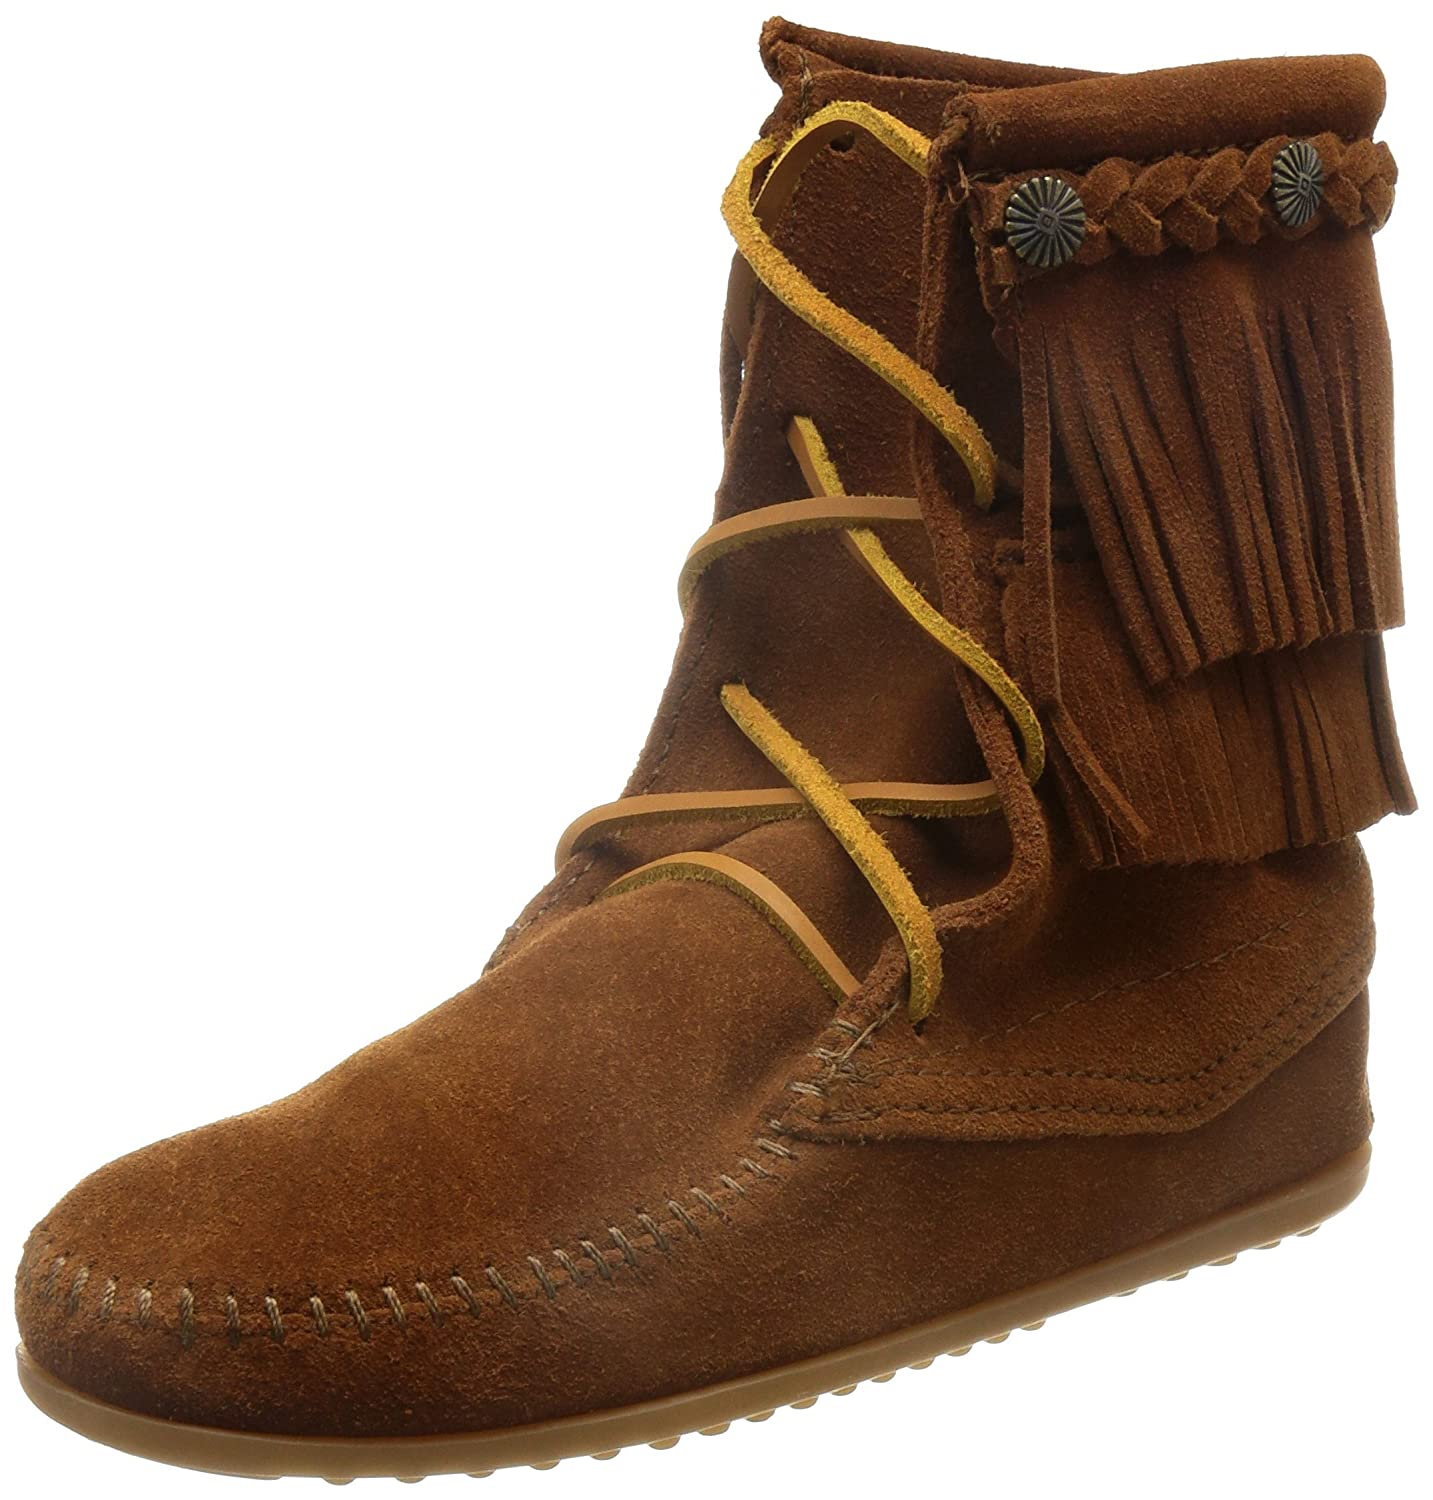 Minnetonka Women's Ankle Hi Tramper Boot B004UEM4KQ 6 B(M) US|Brown